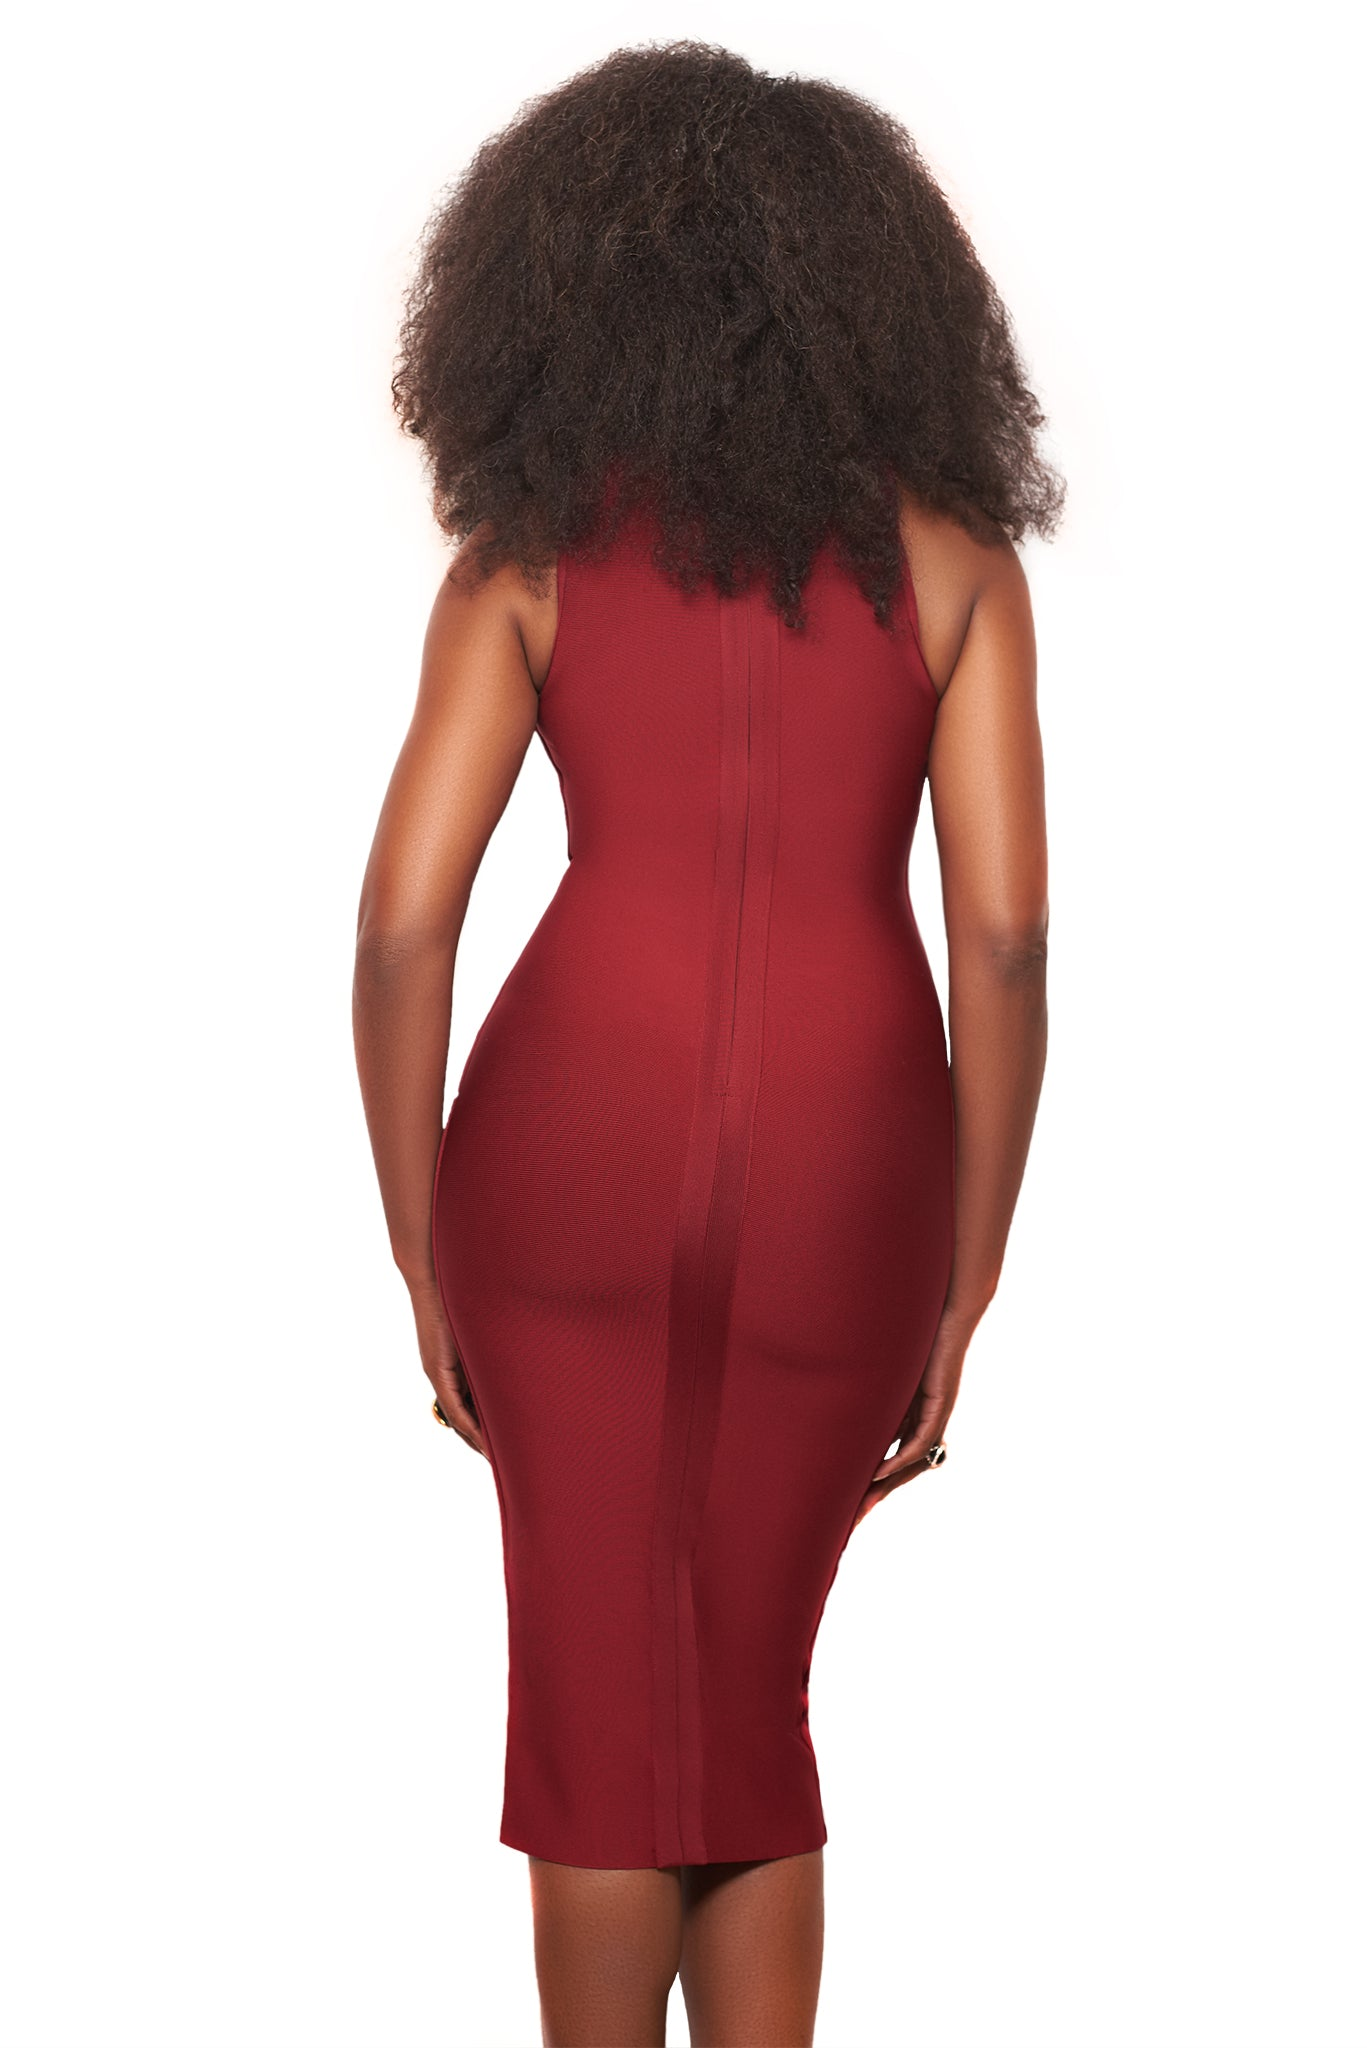 The Salvadora Bandage Dress